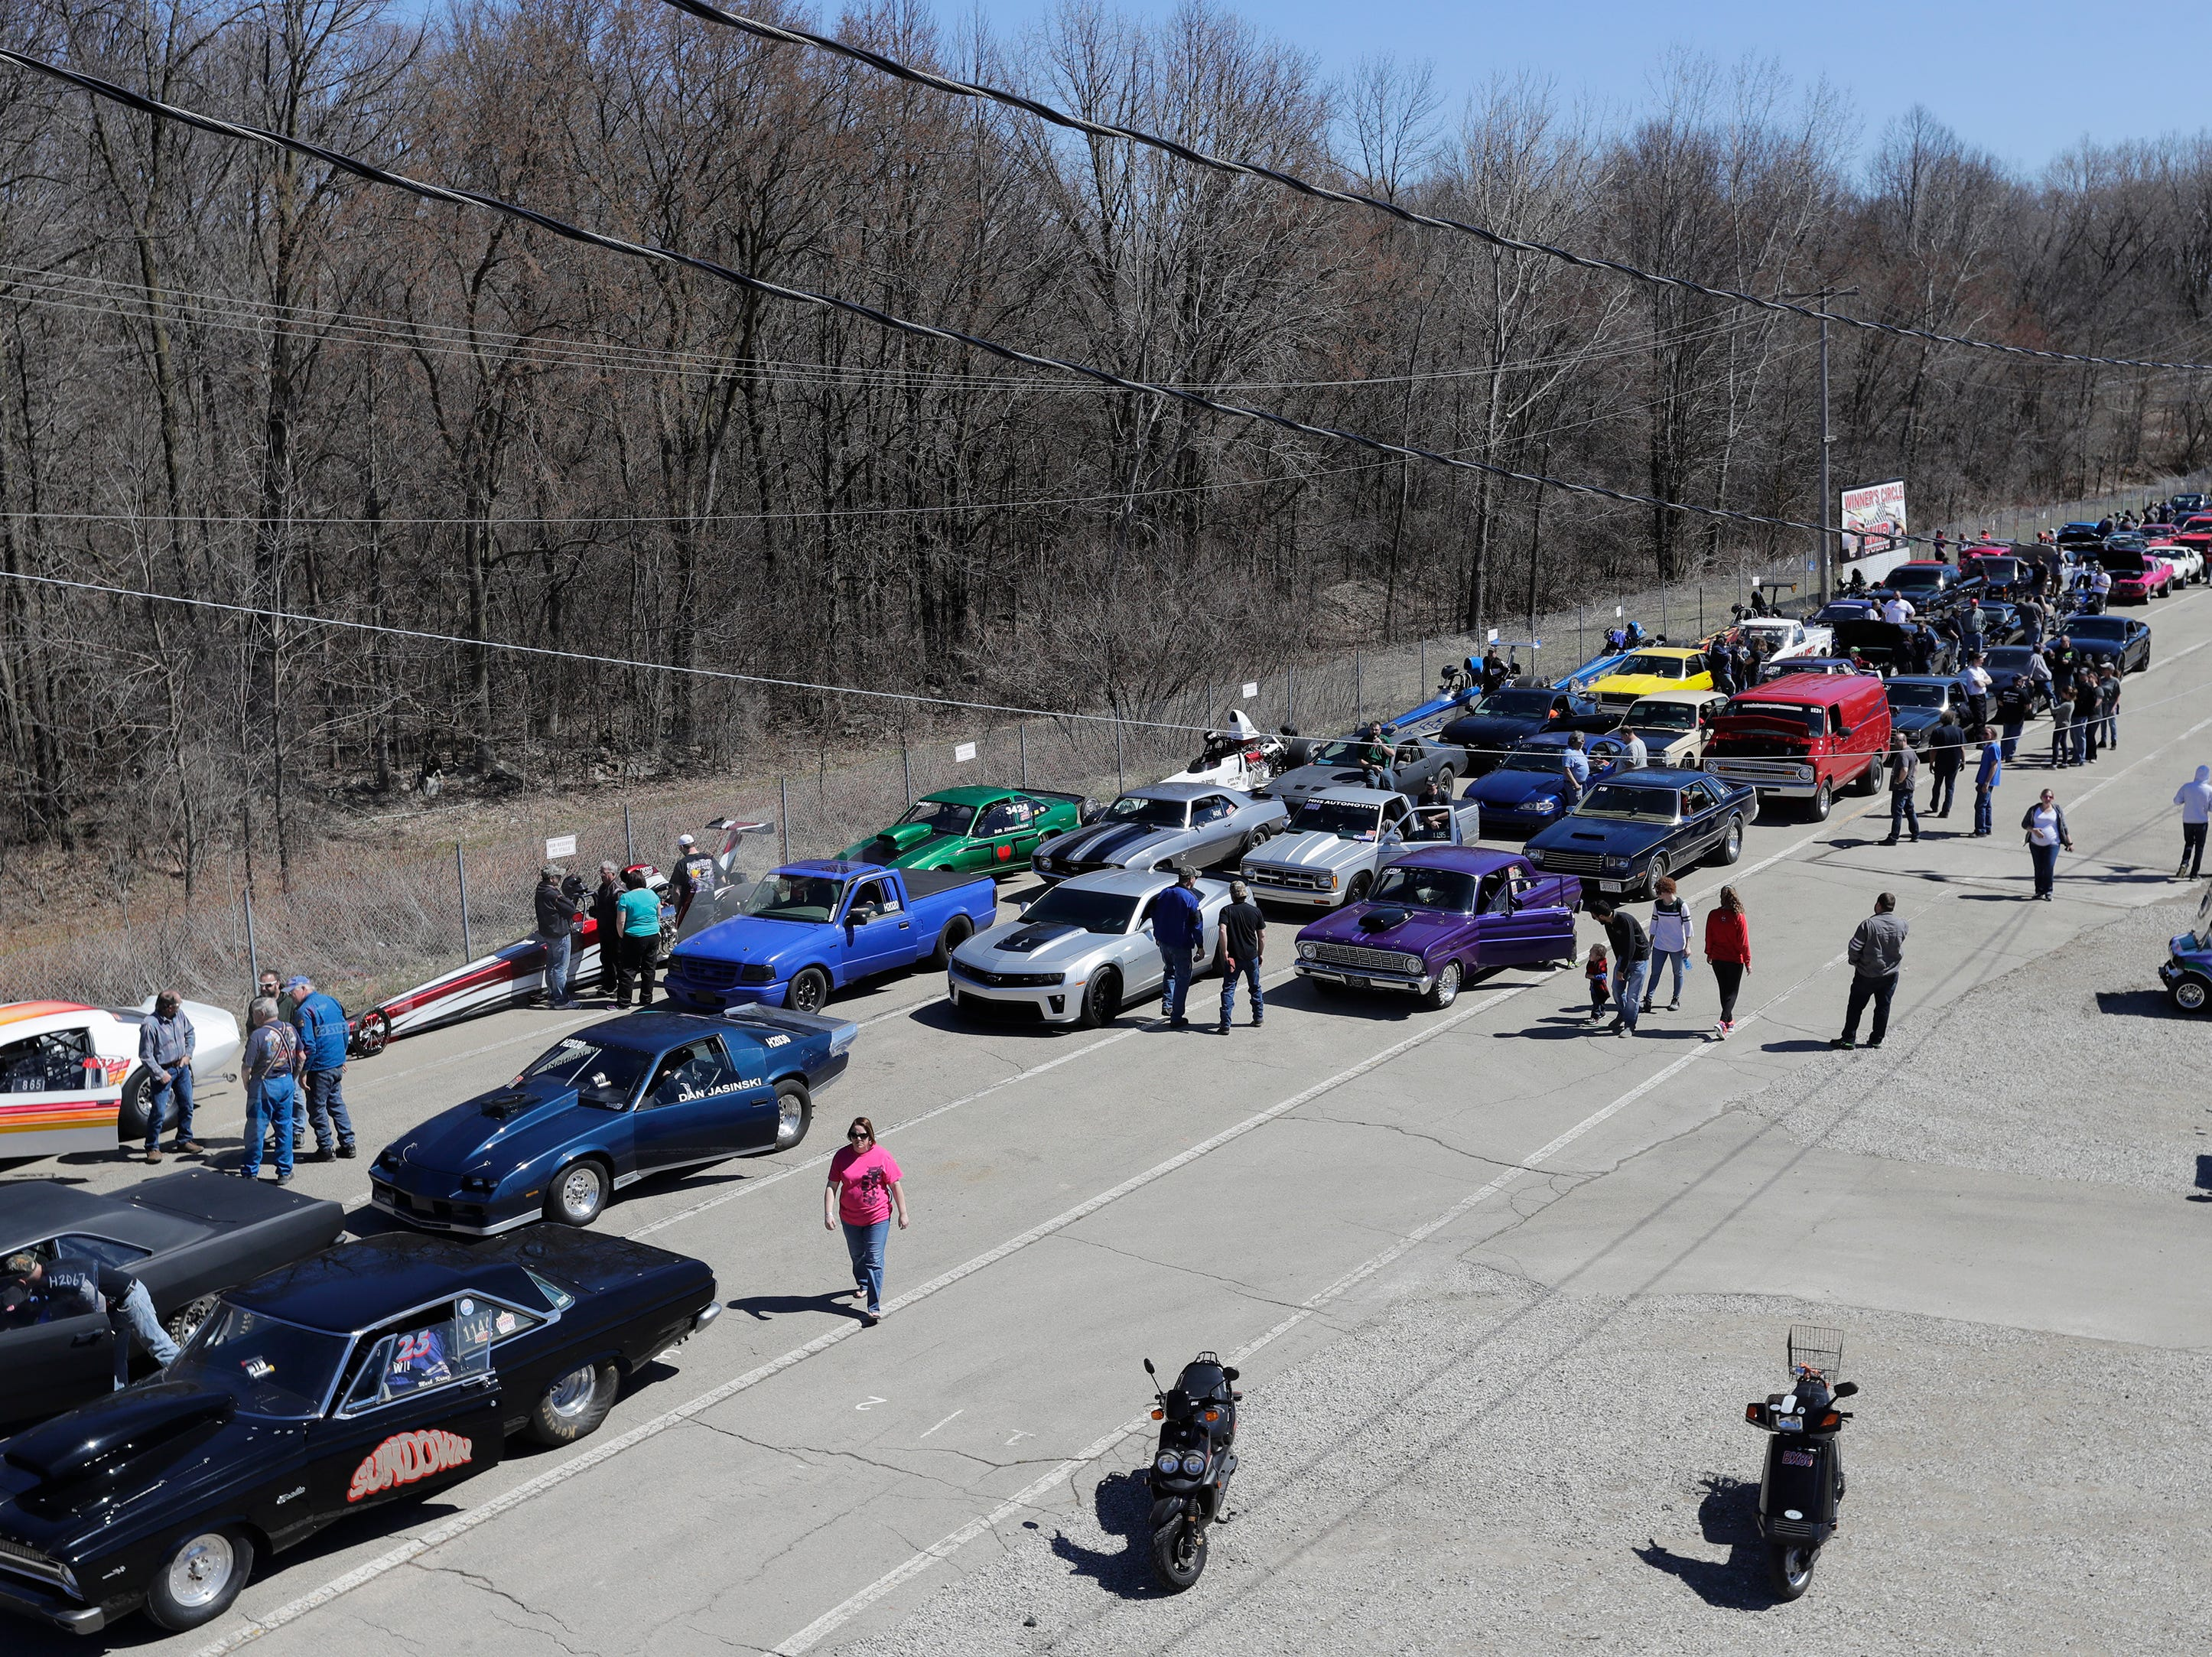 Vehicles line up for their practice runs during the Wisconsin International Raceway Strip Test & Tune event Saturday, April 20, 2019, in Kaukauna, Wis. Drivers spent the day getting safety inspections, tune ups and test runs on the track for the upcoming season.